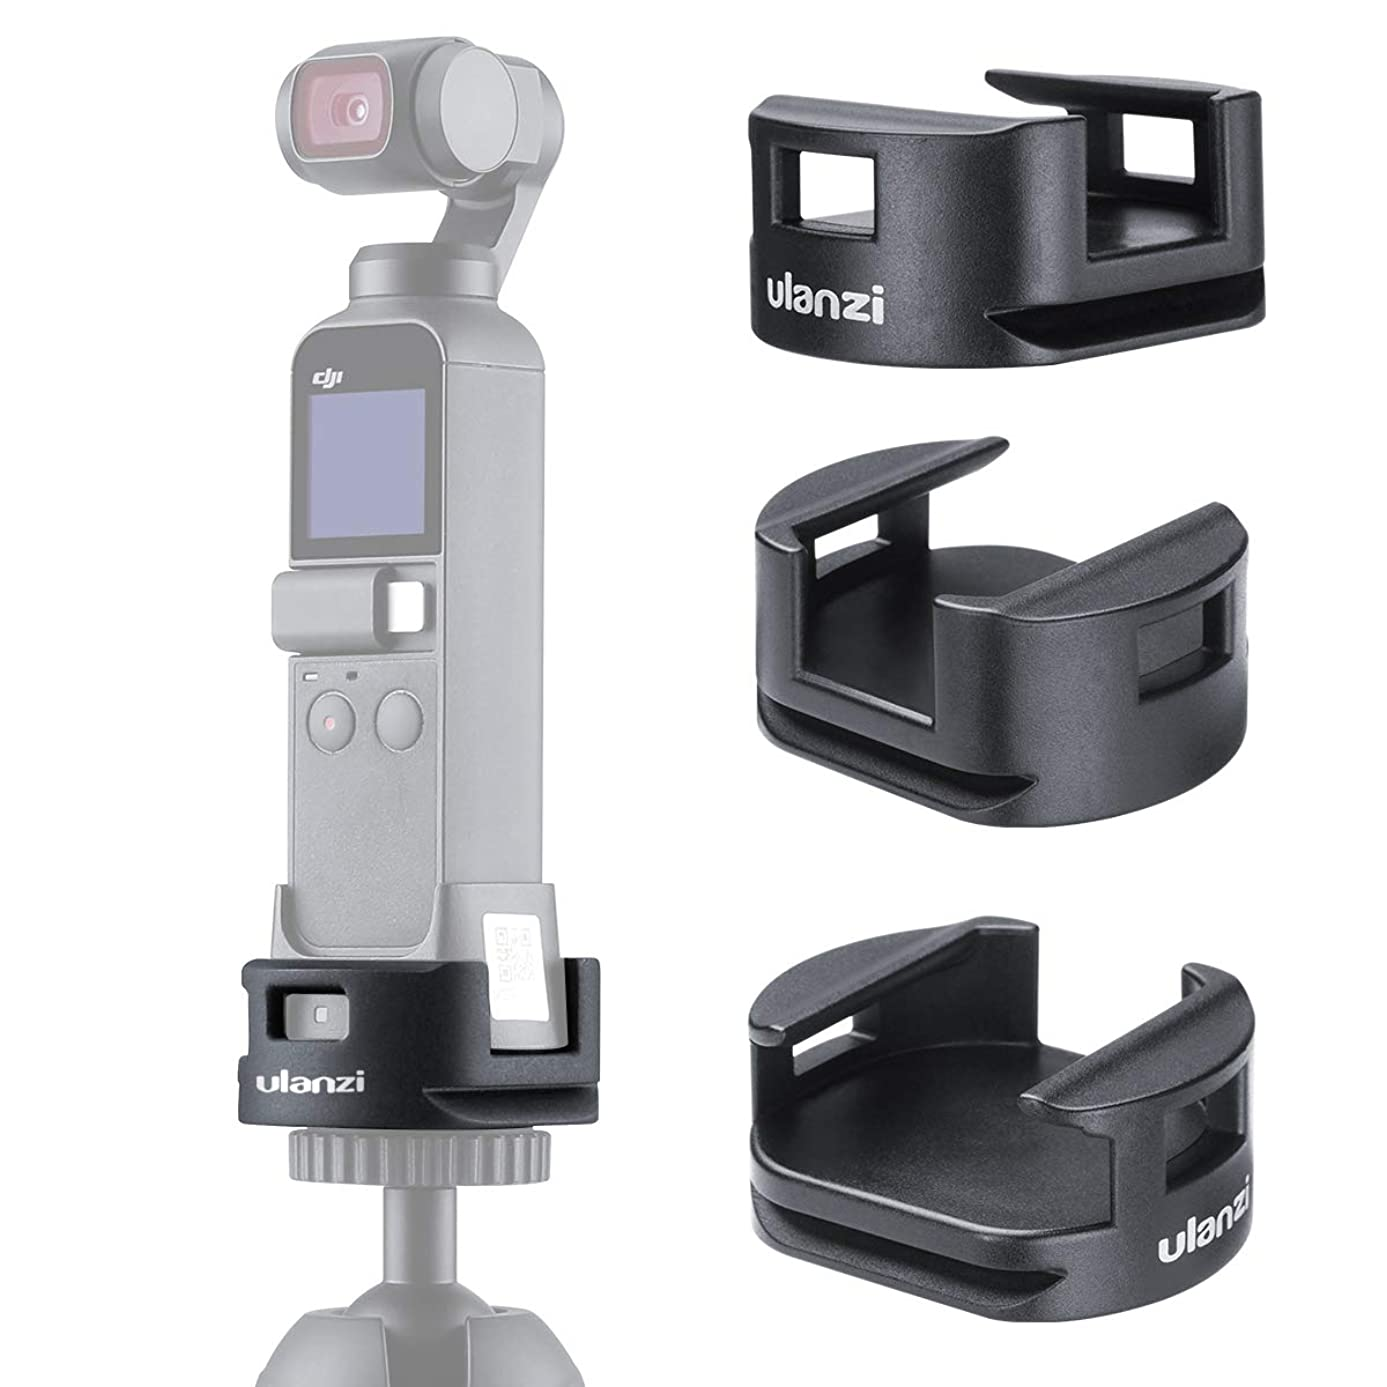 ZUCRQ OP-4 OSMO Pocket WiFi Base Tripod Adapter,Wireless Module Base Compatible for DJI Osmo Pocket Gimbal Accessories